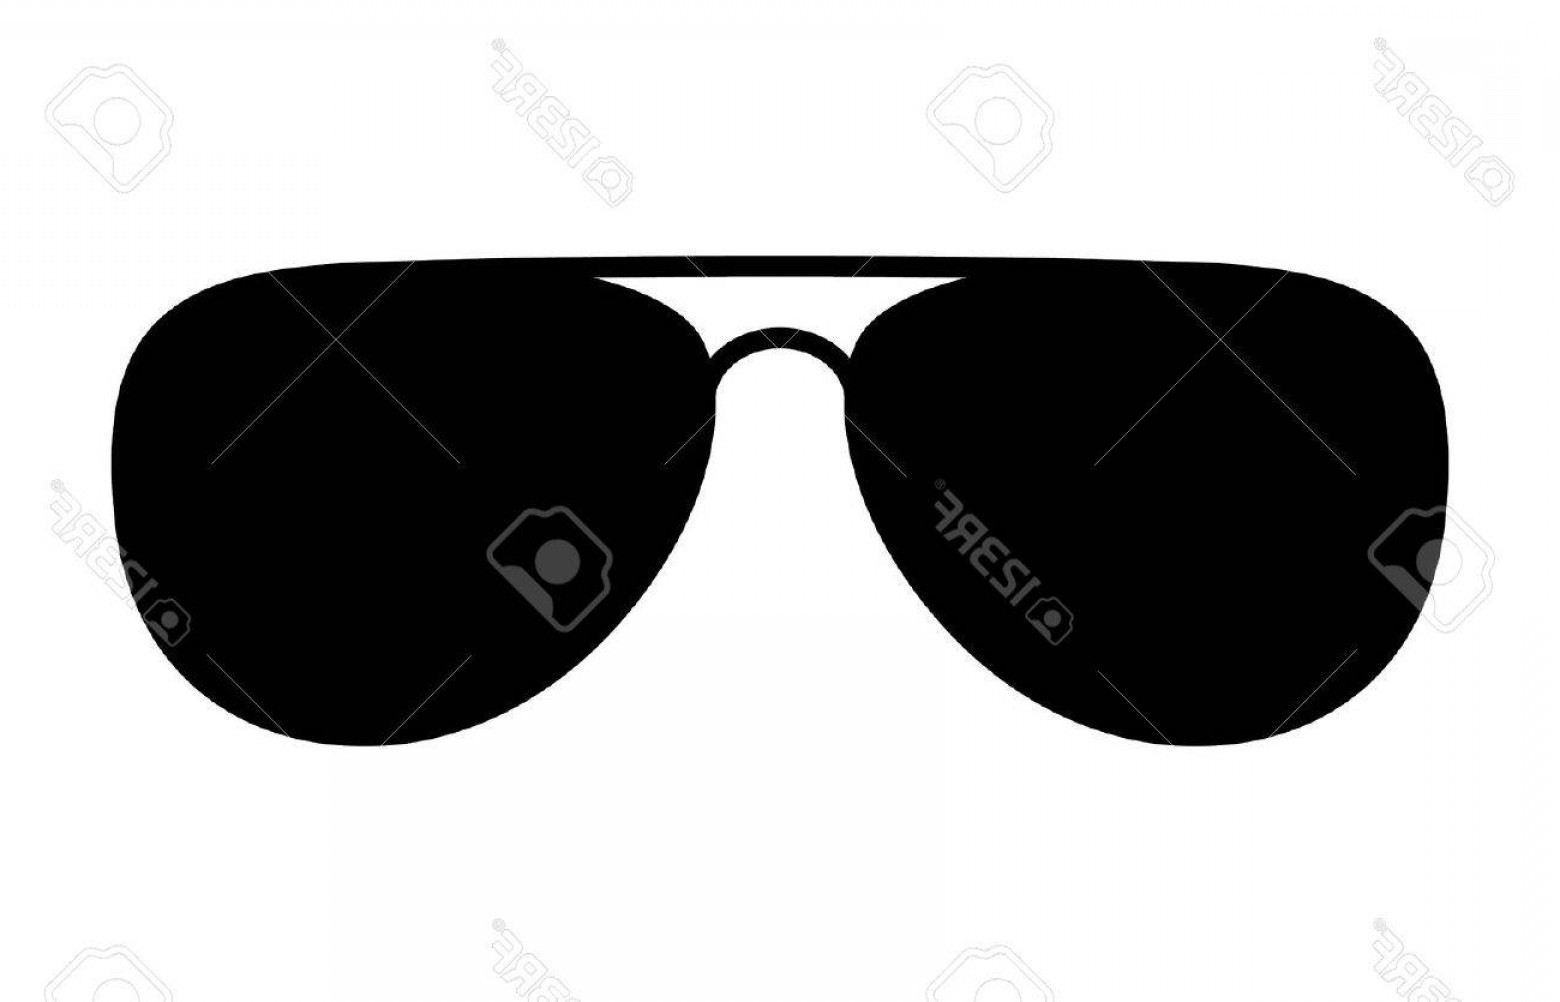 Glasses Vector Flat: Photostock Vector Aviator Sunglasses Shades Protective Eyewear Flat Icon For Apps And Websites